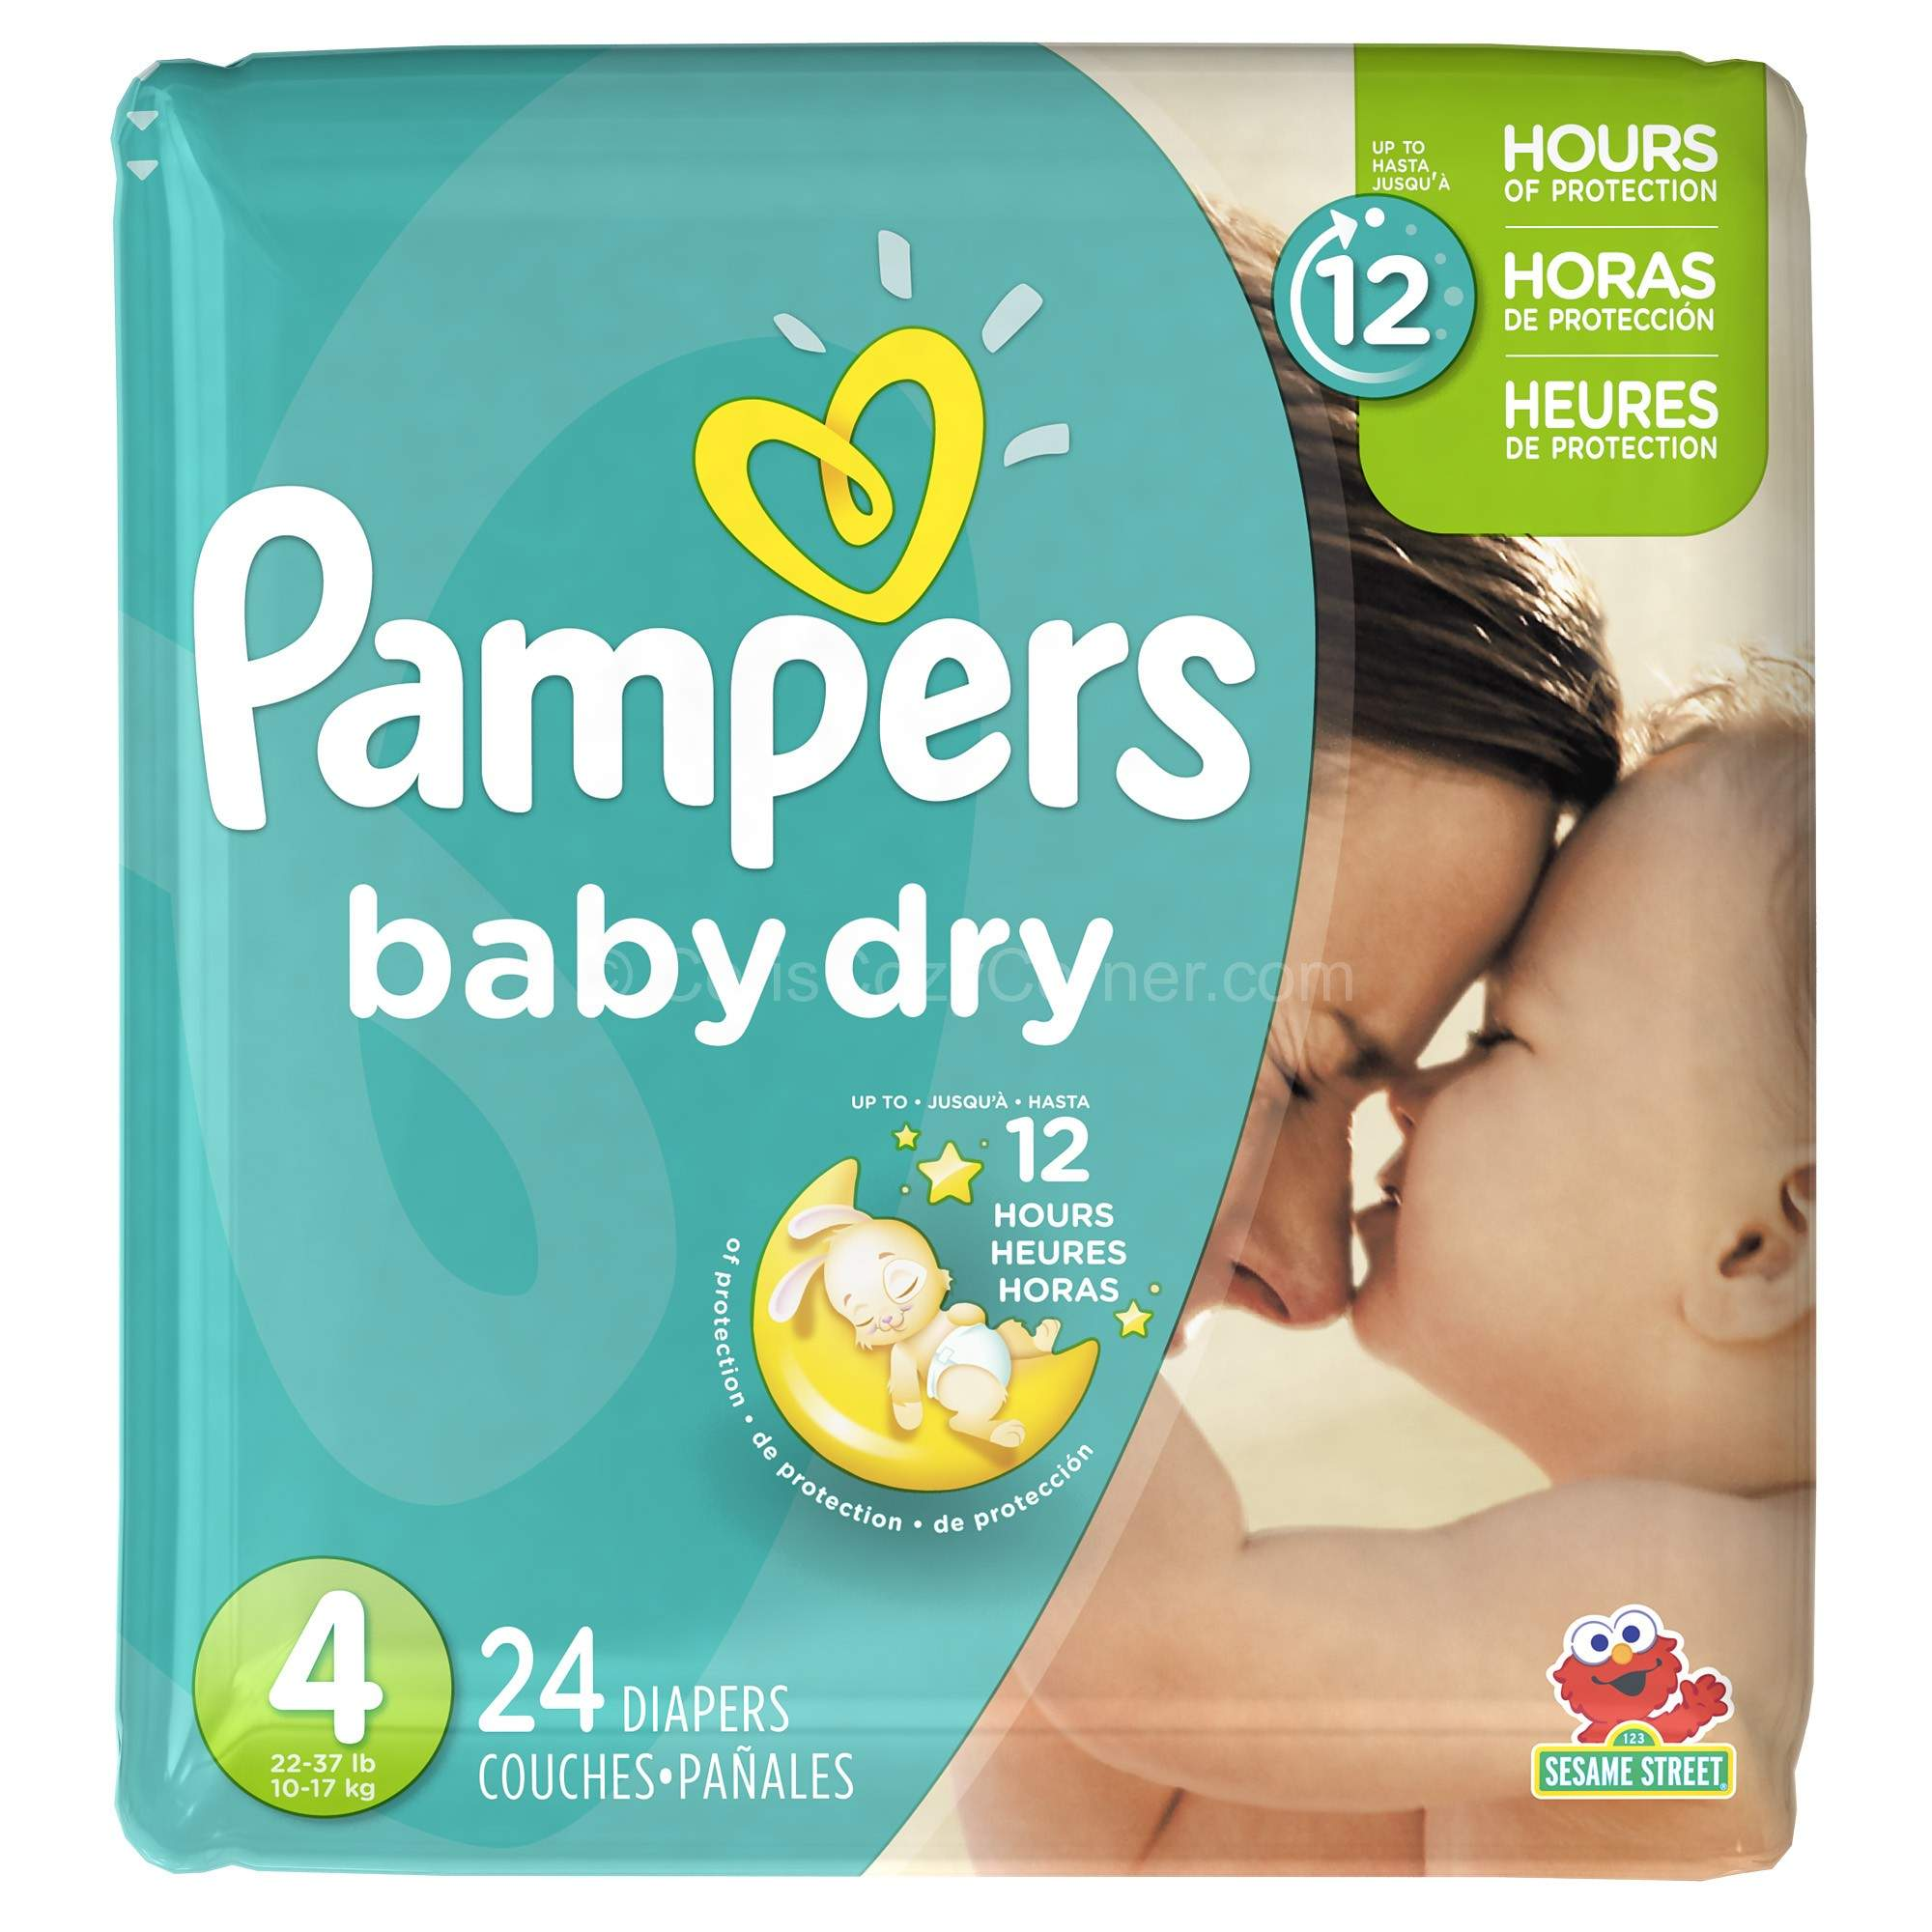 Details about Pampers Swaddlers Sensitive Diapers (Choose Your Size 1,2,3,4) Up to 12 hours Pampers Swaddlers Sensitive Diapers (Choose Your Size 1,2,3,4) Up to 12 hours Item InformationSeller Rating: % positive.